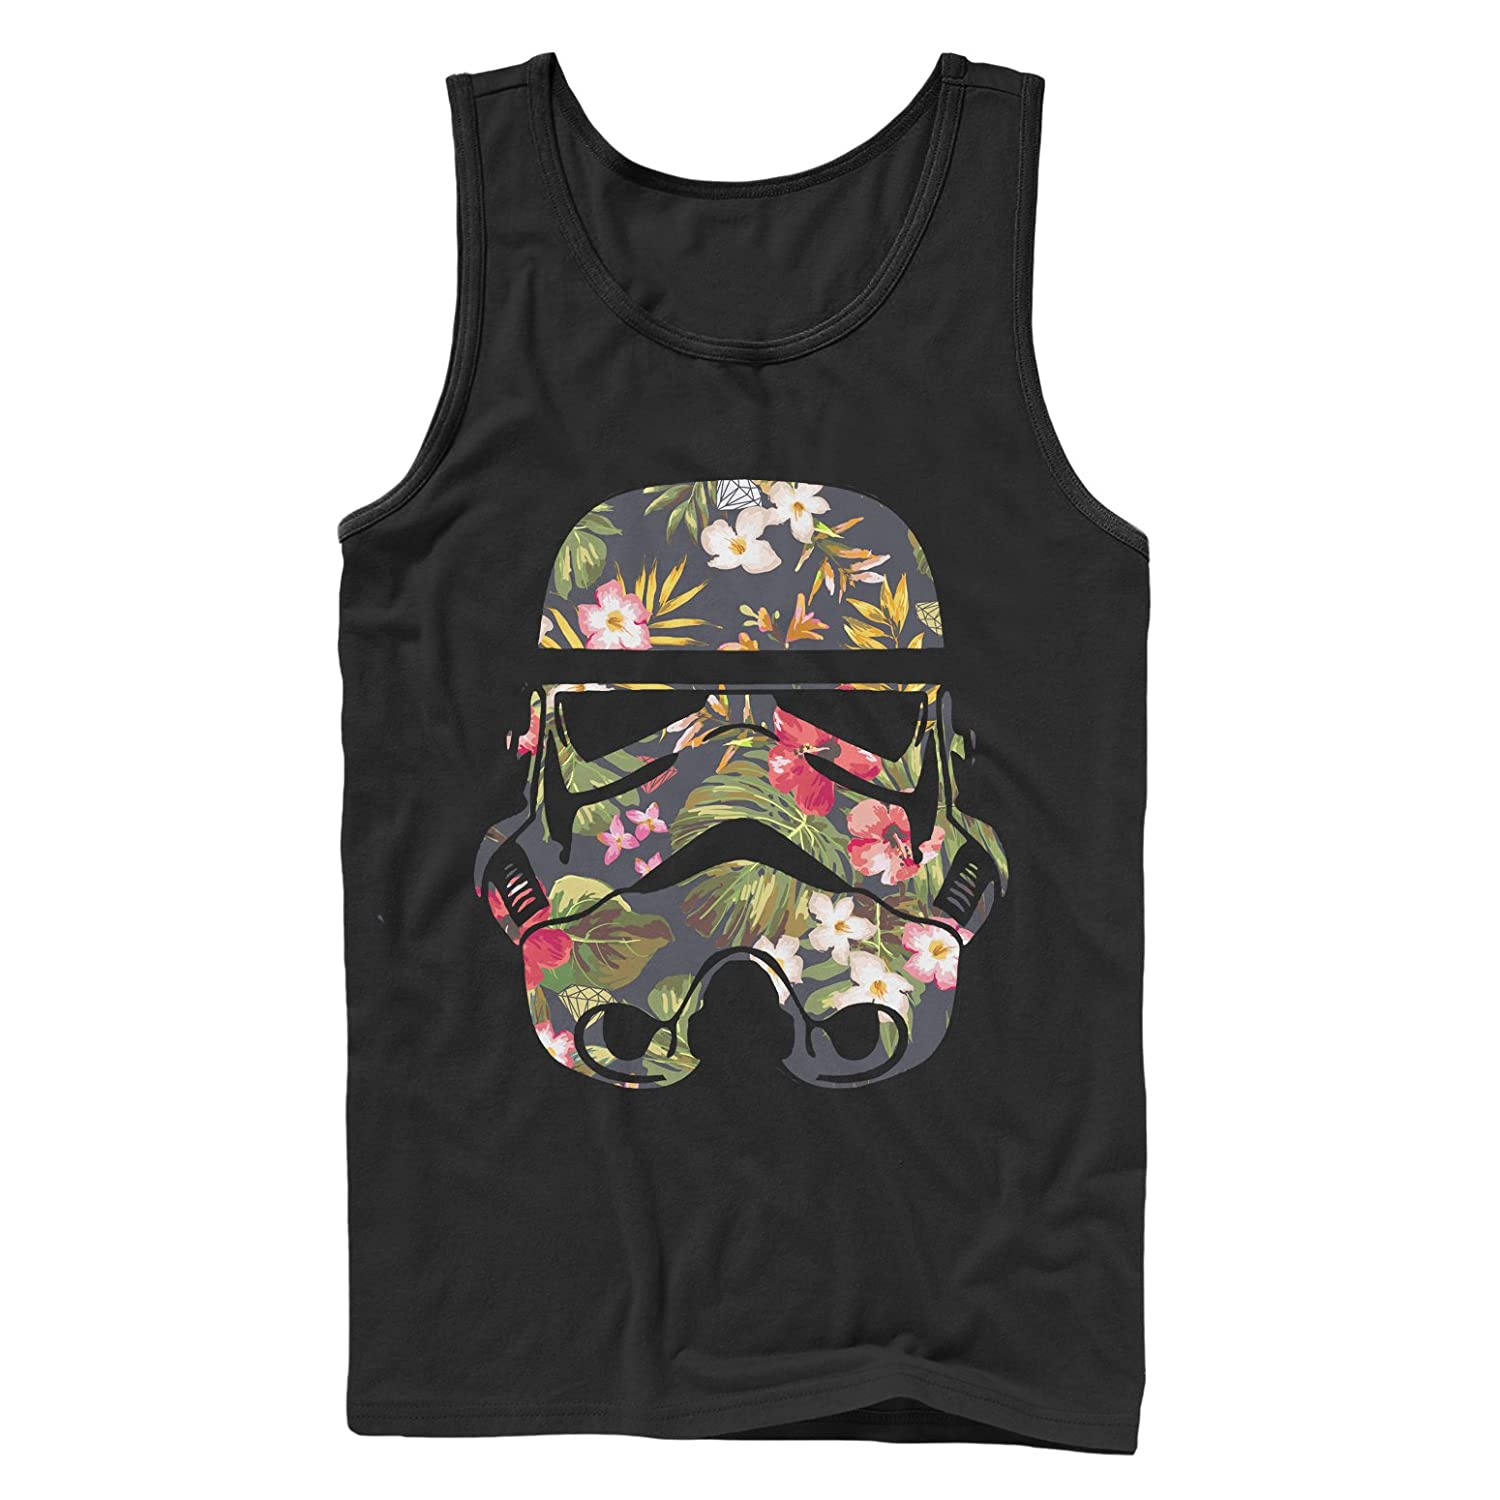 2bb76a48b77f8 Officially Licensed Storm Flowers Men s Tank